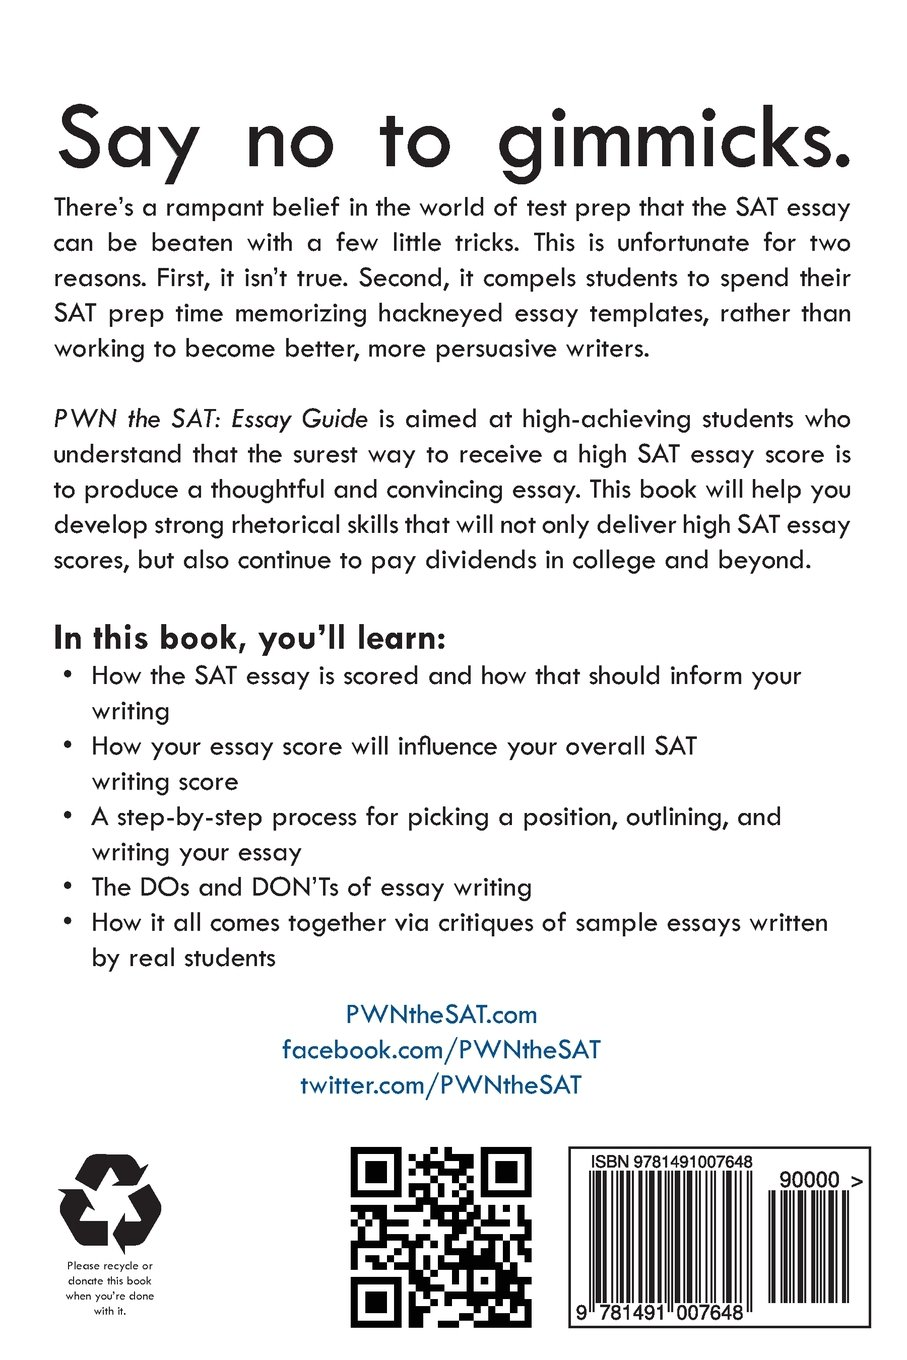 sat essay pwn the sat essay guide mike mcclenathan amazon  pwn the sat essay guide mike mcclenathan amazon pwn the sat essay guide mike mcclenathan 9781491007648